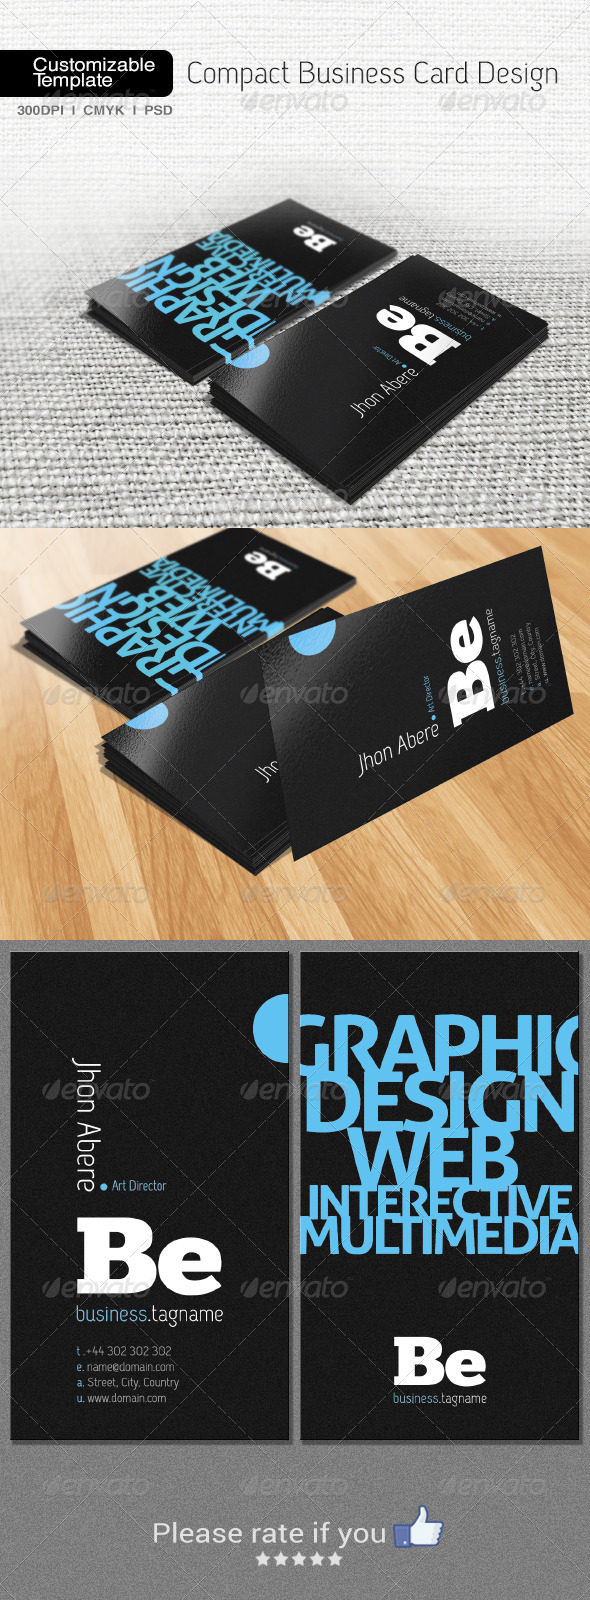 Compact Business Card Design - Creative Business Cards